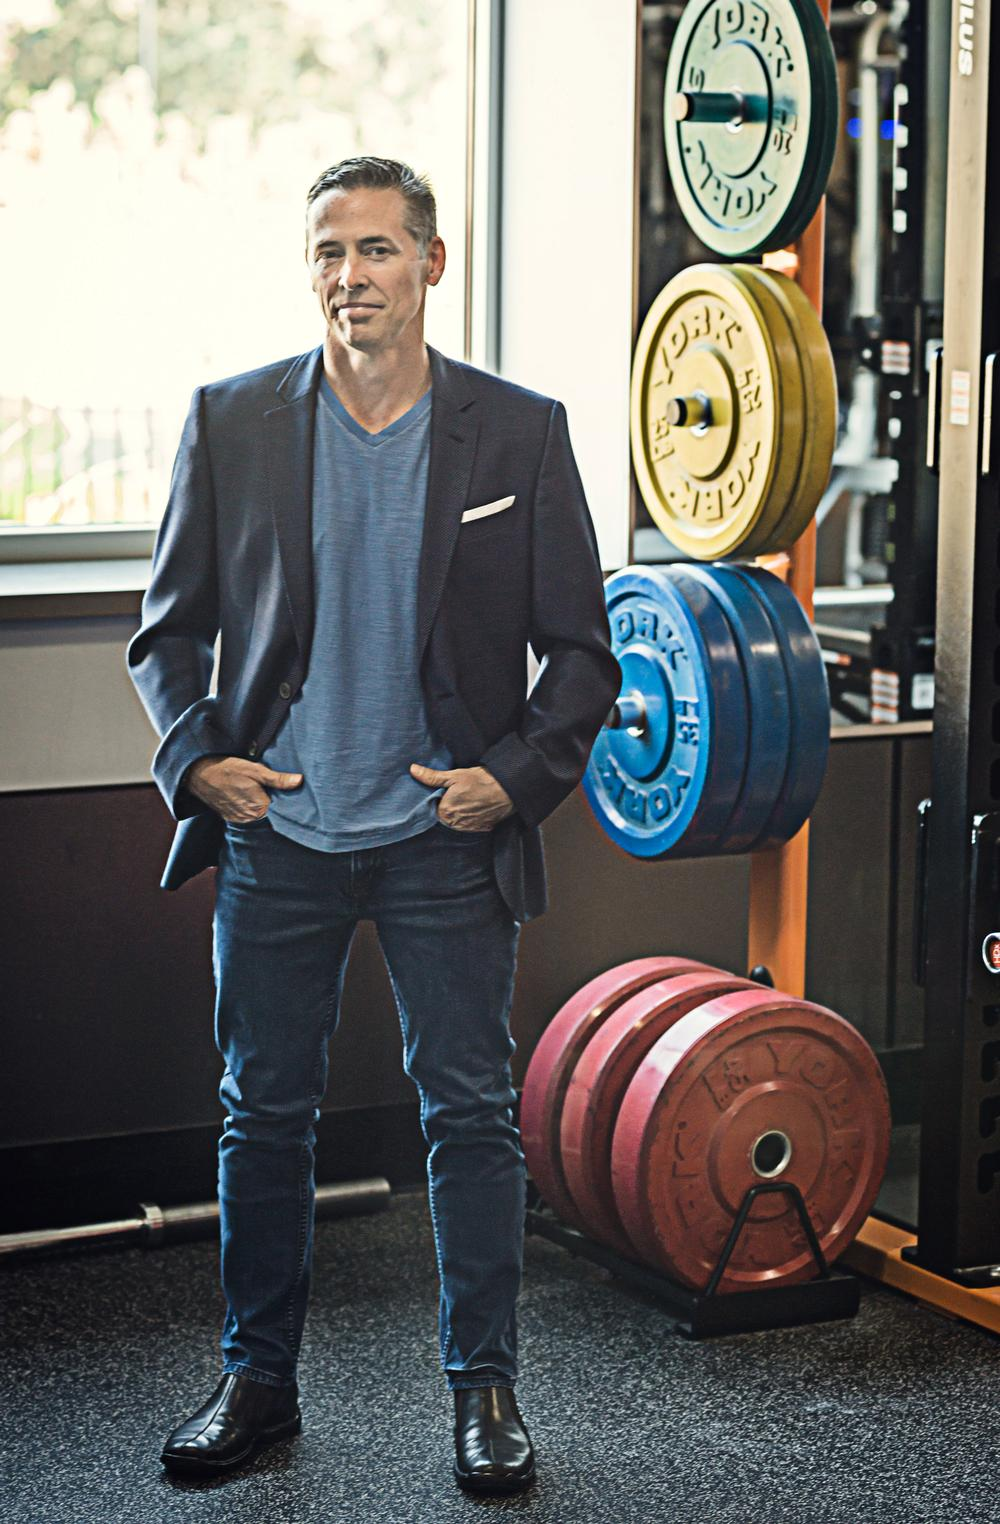 Gallup began his fitness career at Gold's Gym Hawaii, overseeing retail